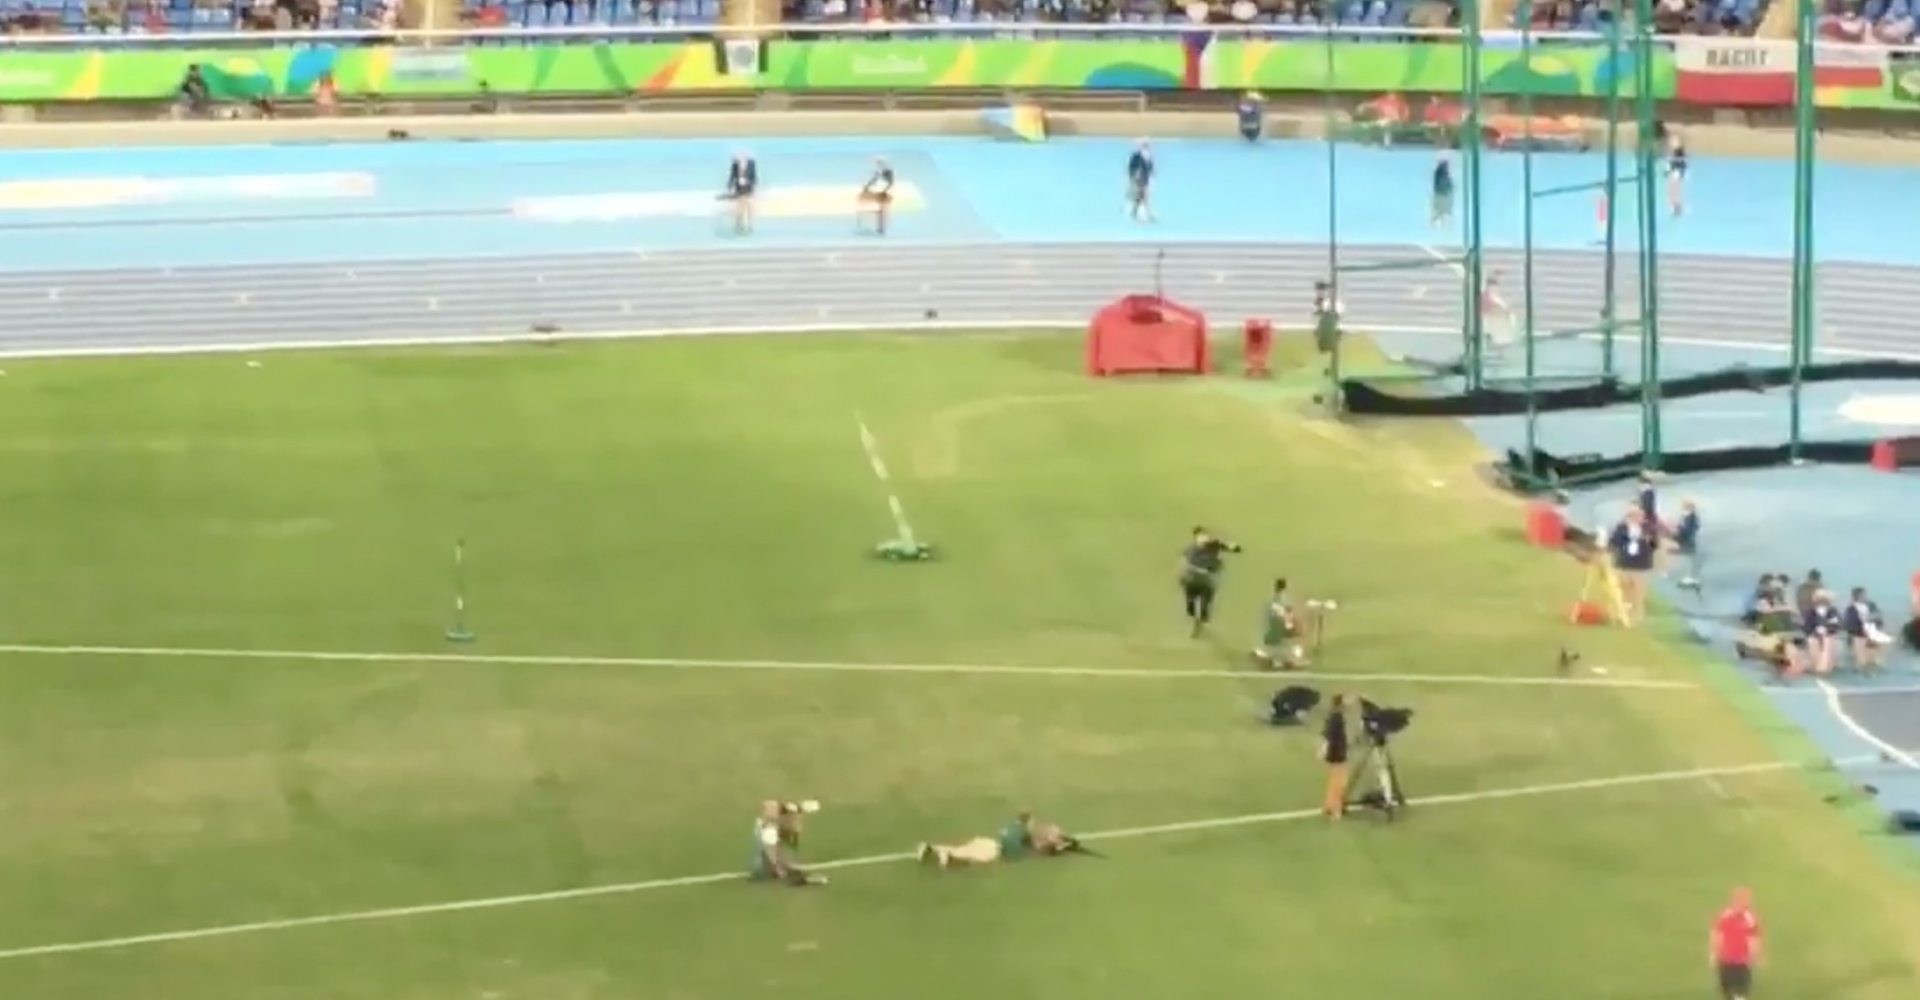 Rio's Javelin-Fetching Remote Control Cars Are Our New Olympic Heroes